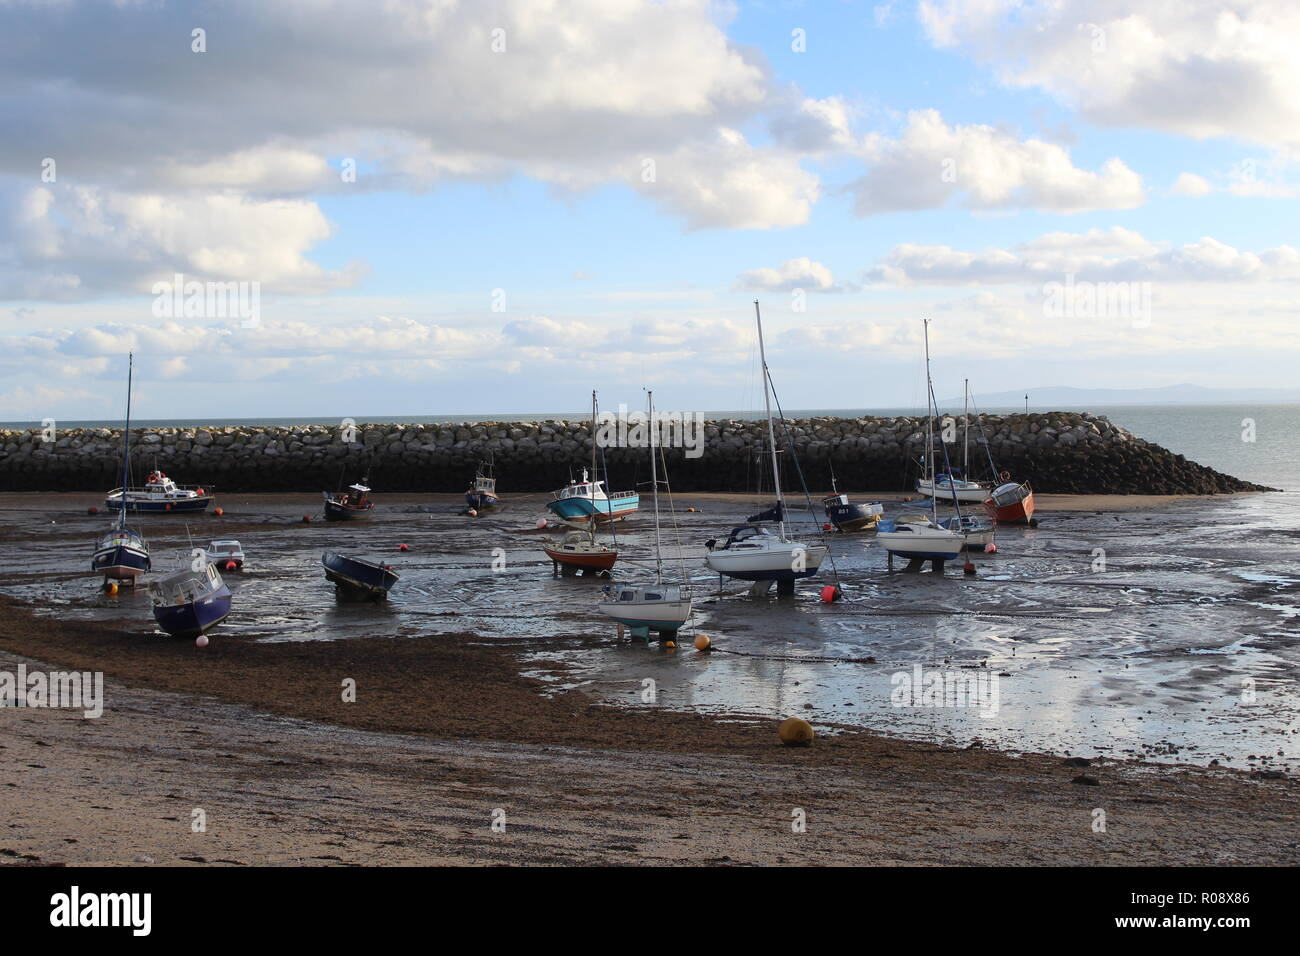 Boats washed up on the beach in Rhos-on-sea, Wales. - Stock Image